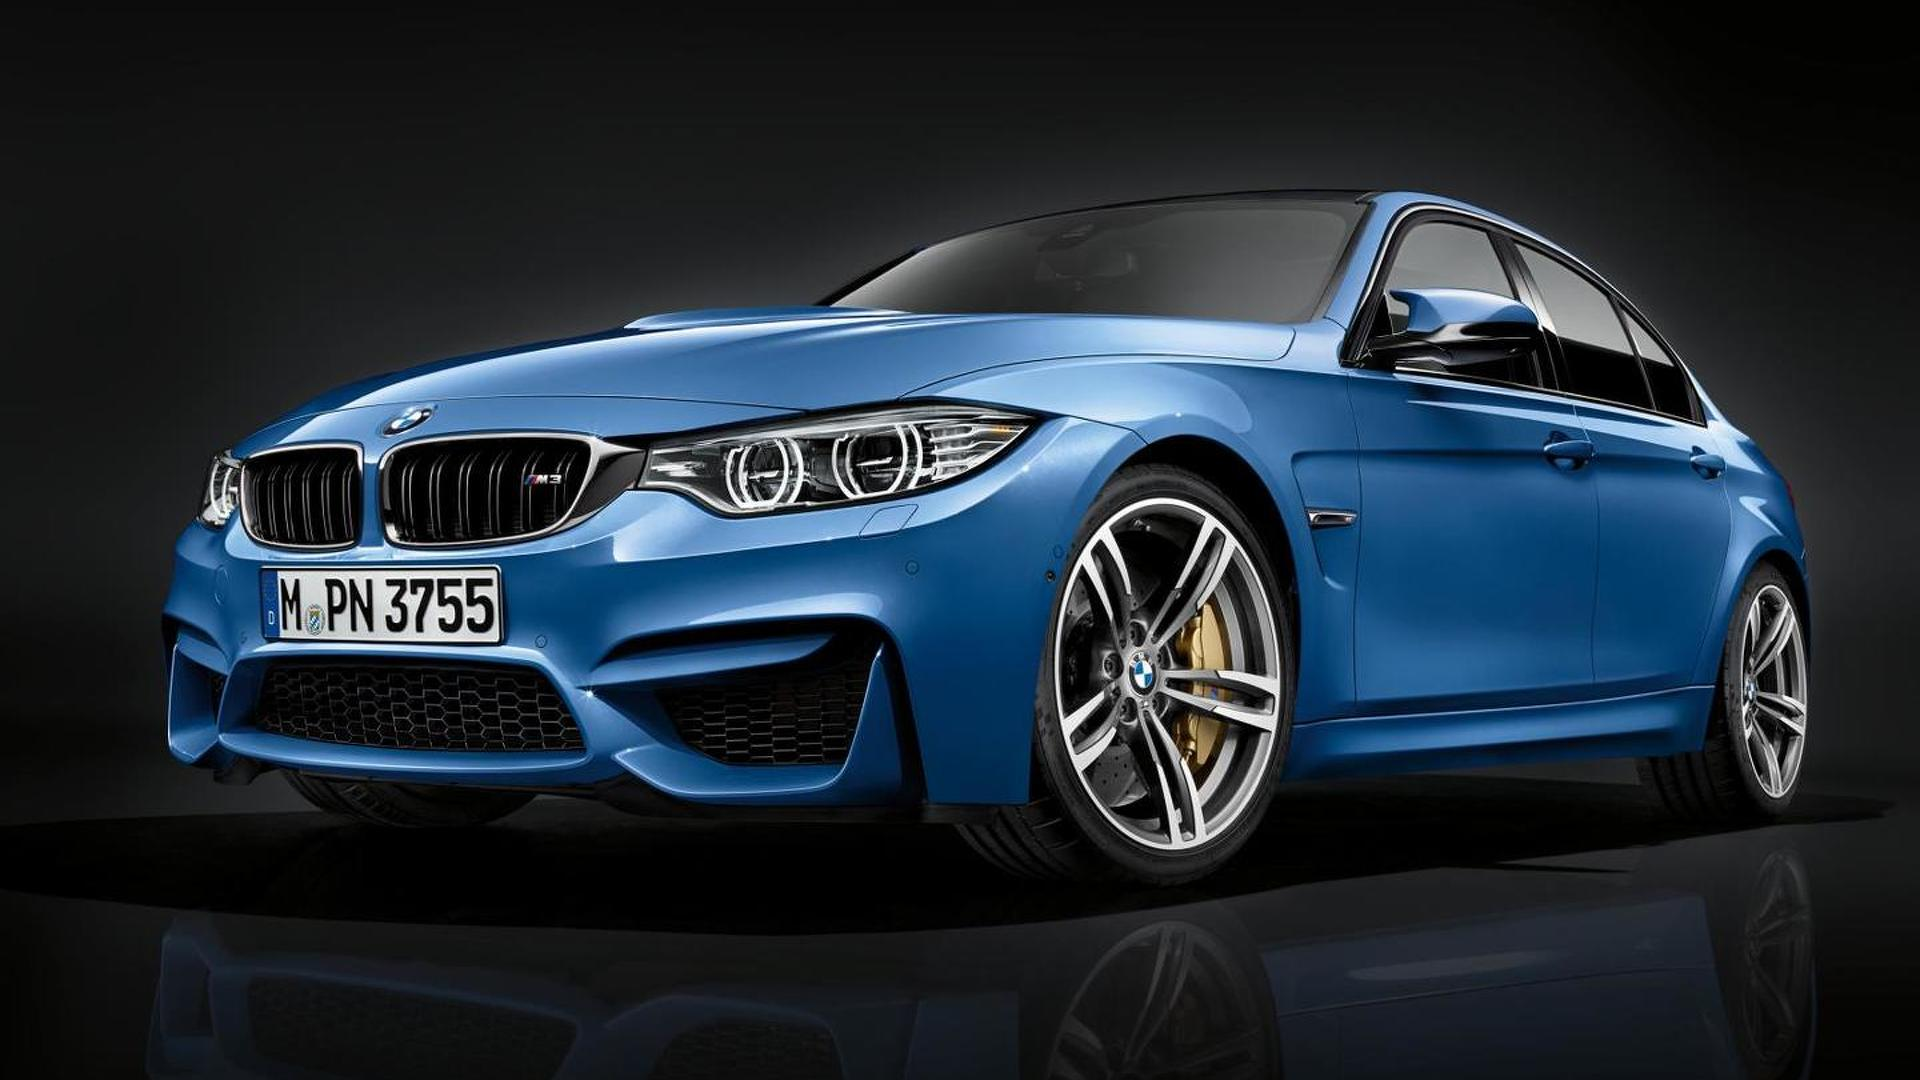 BMW execs reportedly confirm the next M3 / M4 will be a plug-in hybrid